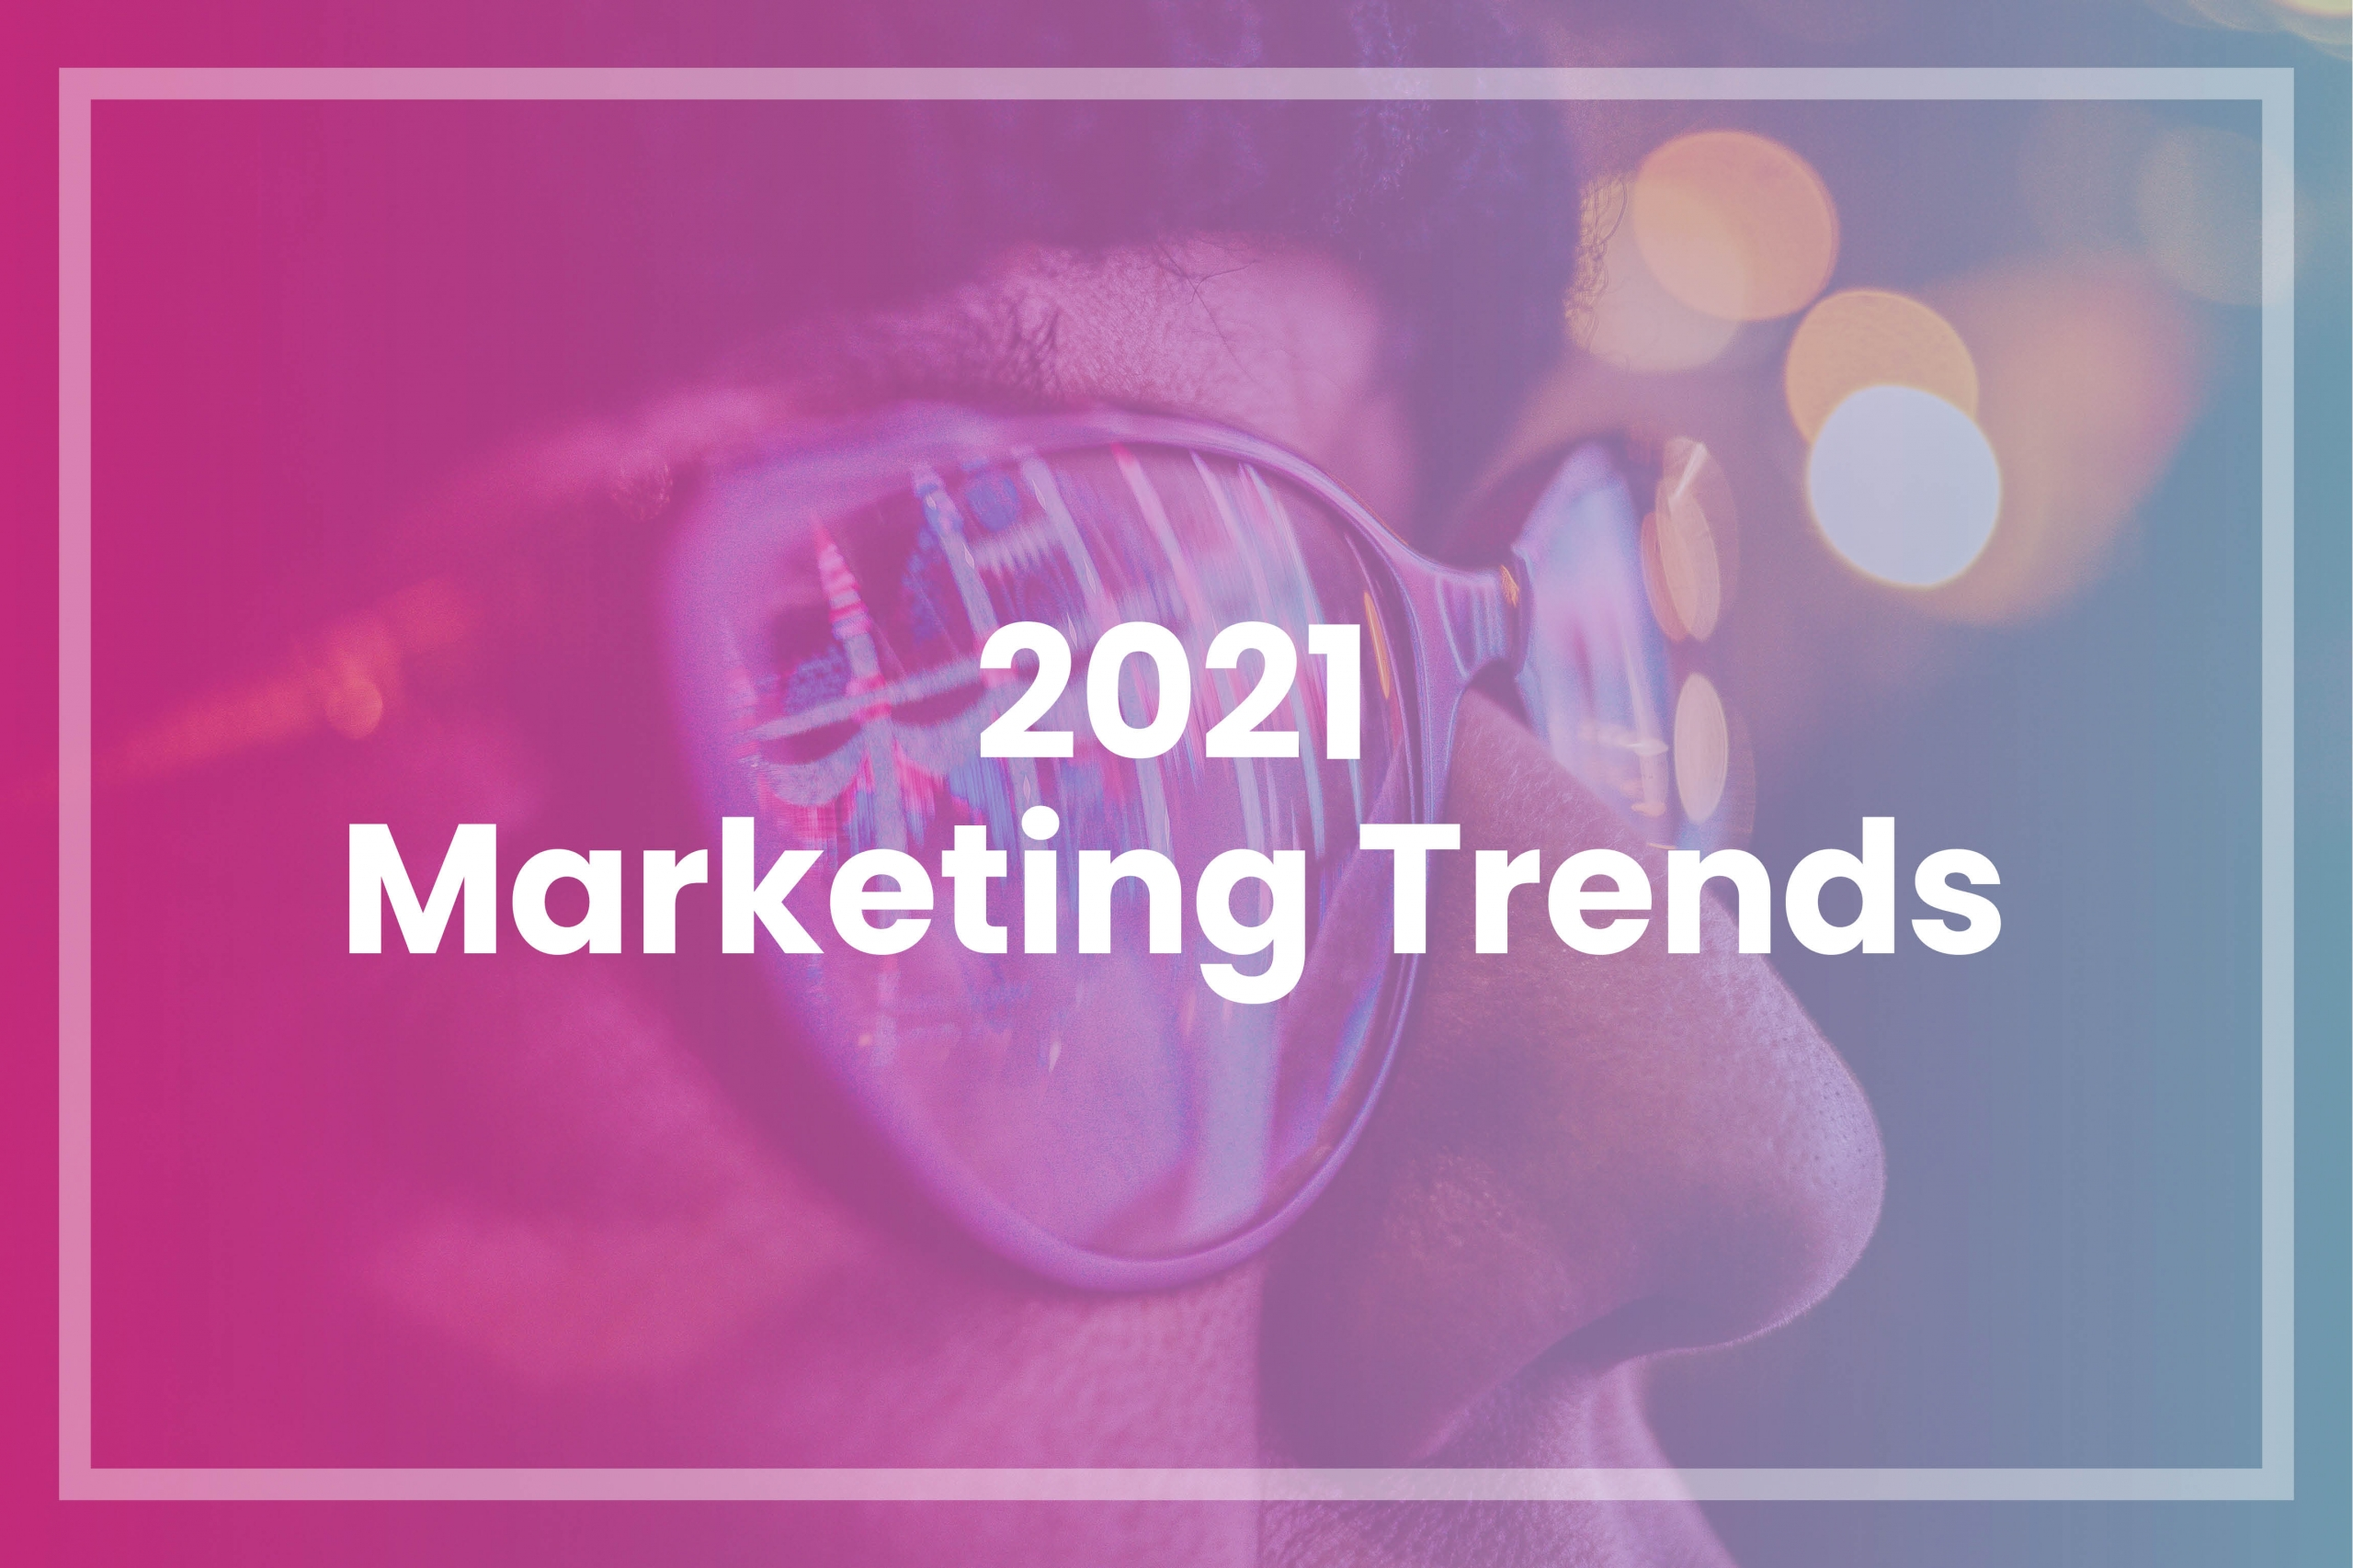 5 trends that will define marketing in 2021